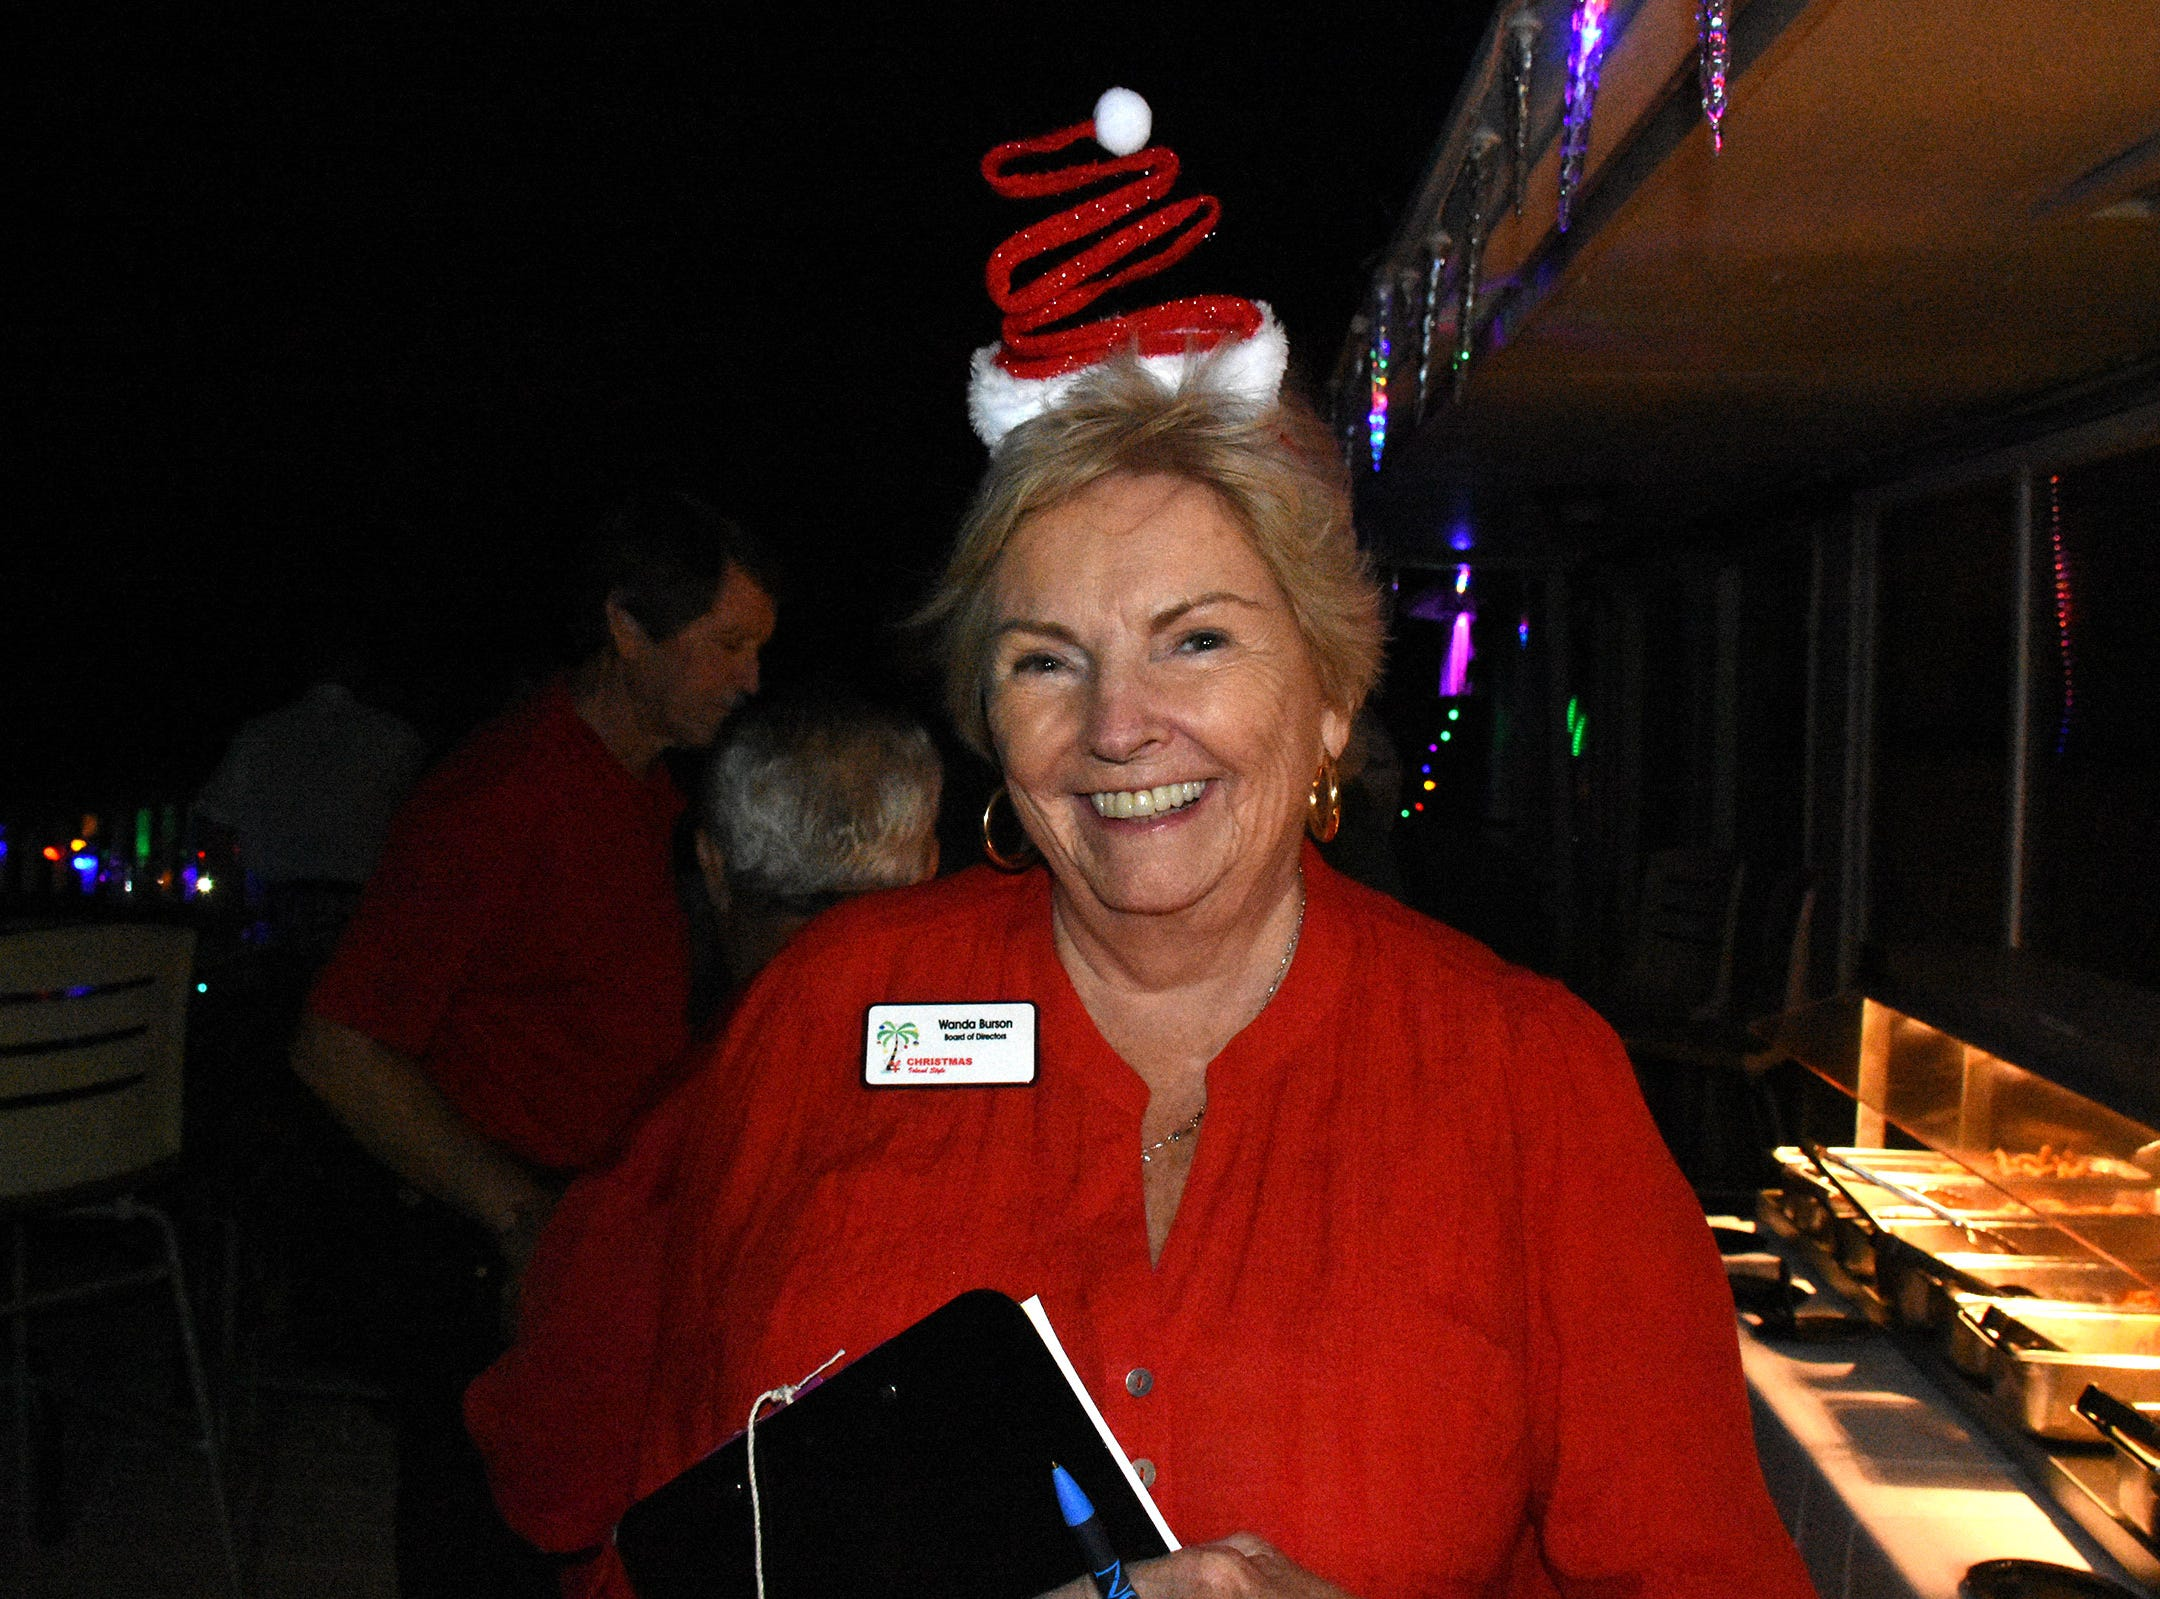 Head judge Wanda Day relaxed atop the Snook Inn after the parade passed. The Christmas Island Style boat parade lit up Marco waterways Saturday evening.